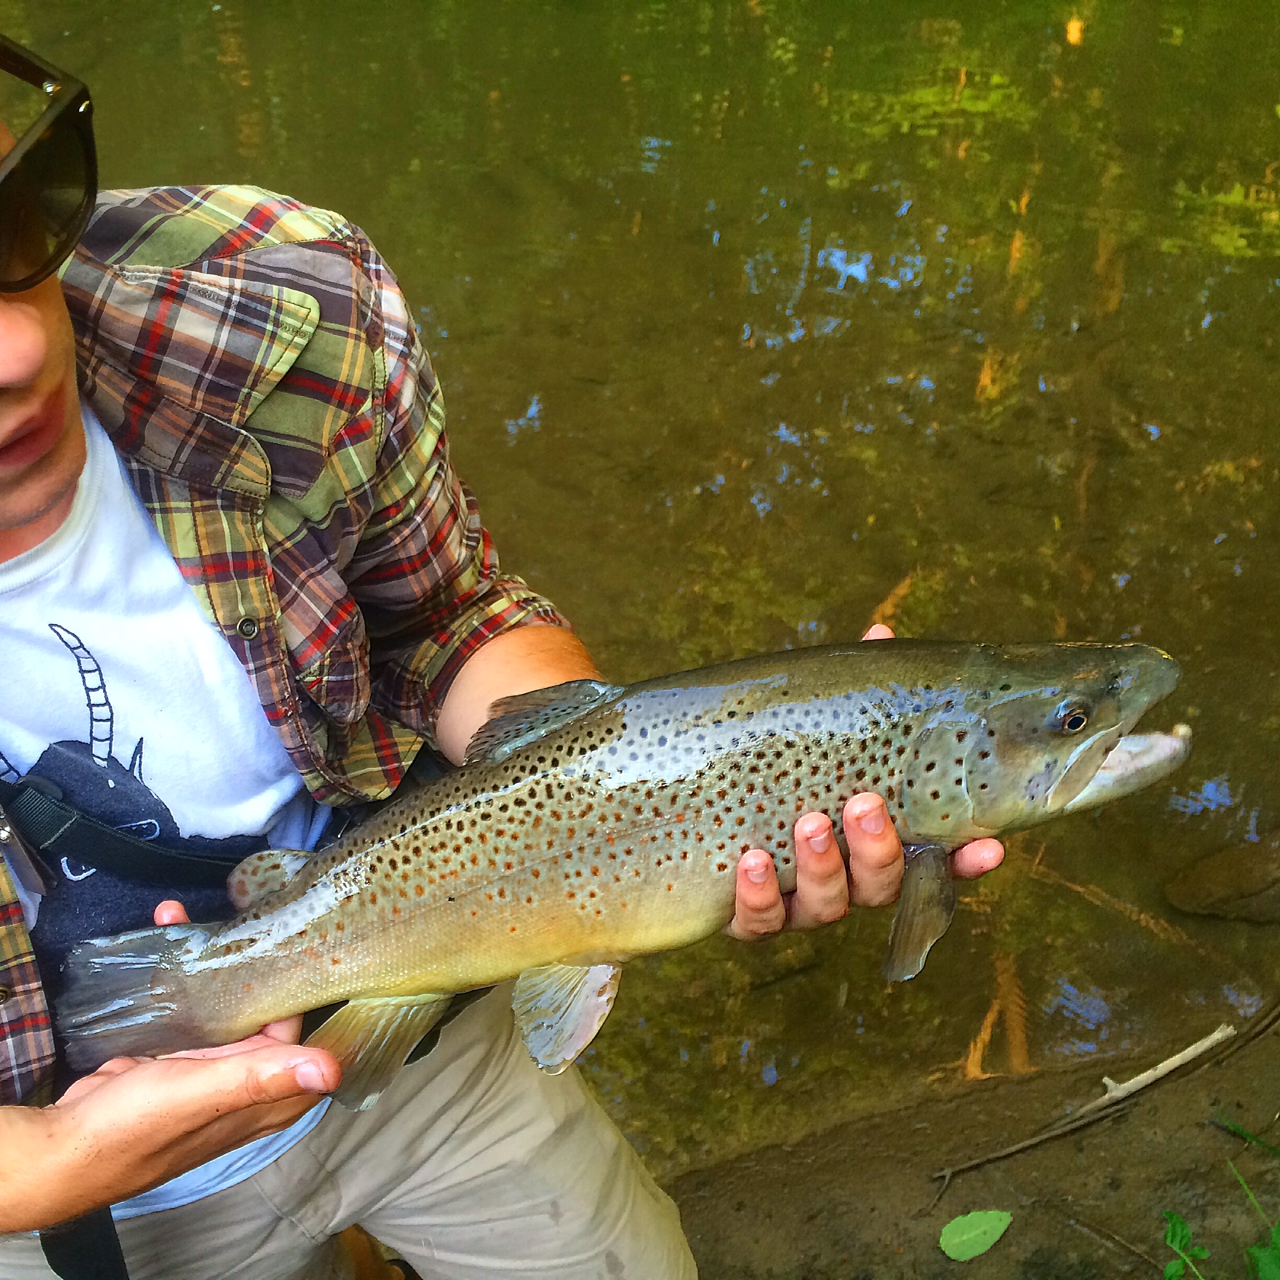 Fly fishing western ny jdsflyfishing for Trout fishing ny